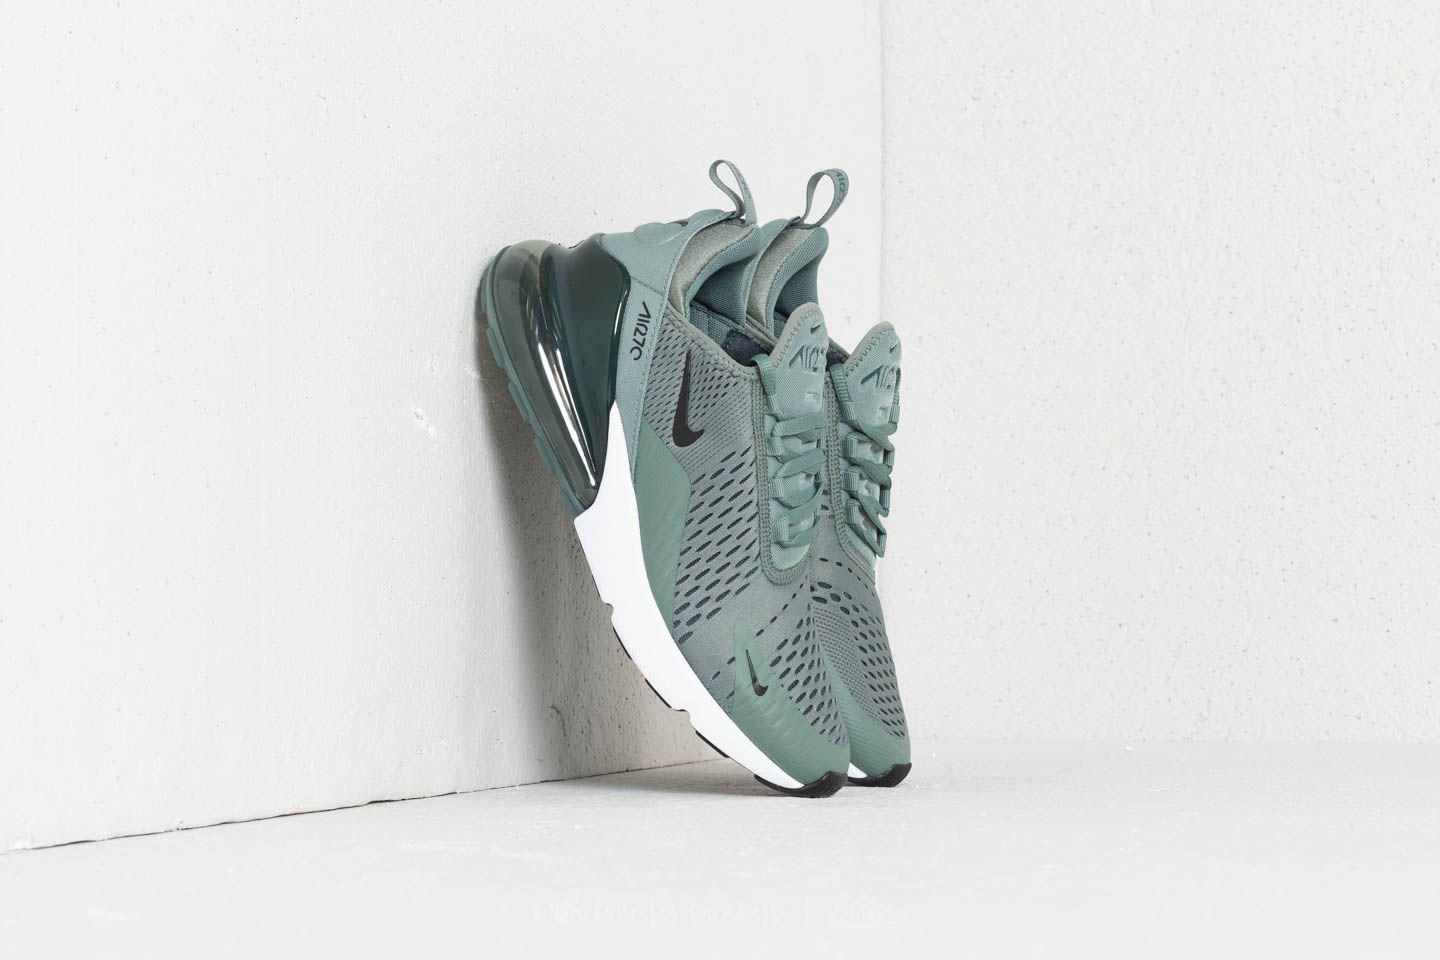 8e10418bbf Nike Air Max 270 Clay Green/ Black/ Deep Green in Green for Men - Lyst